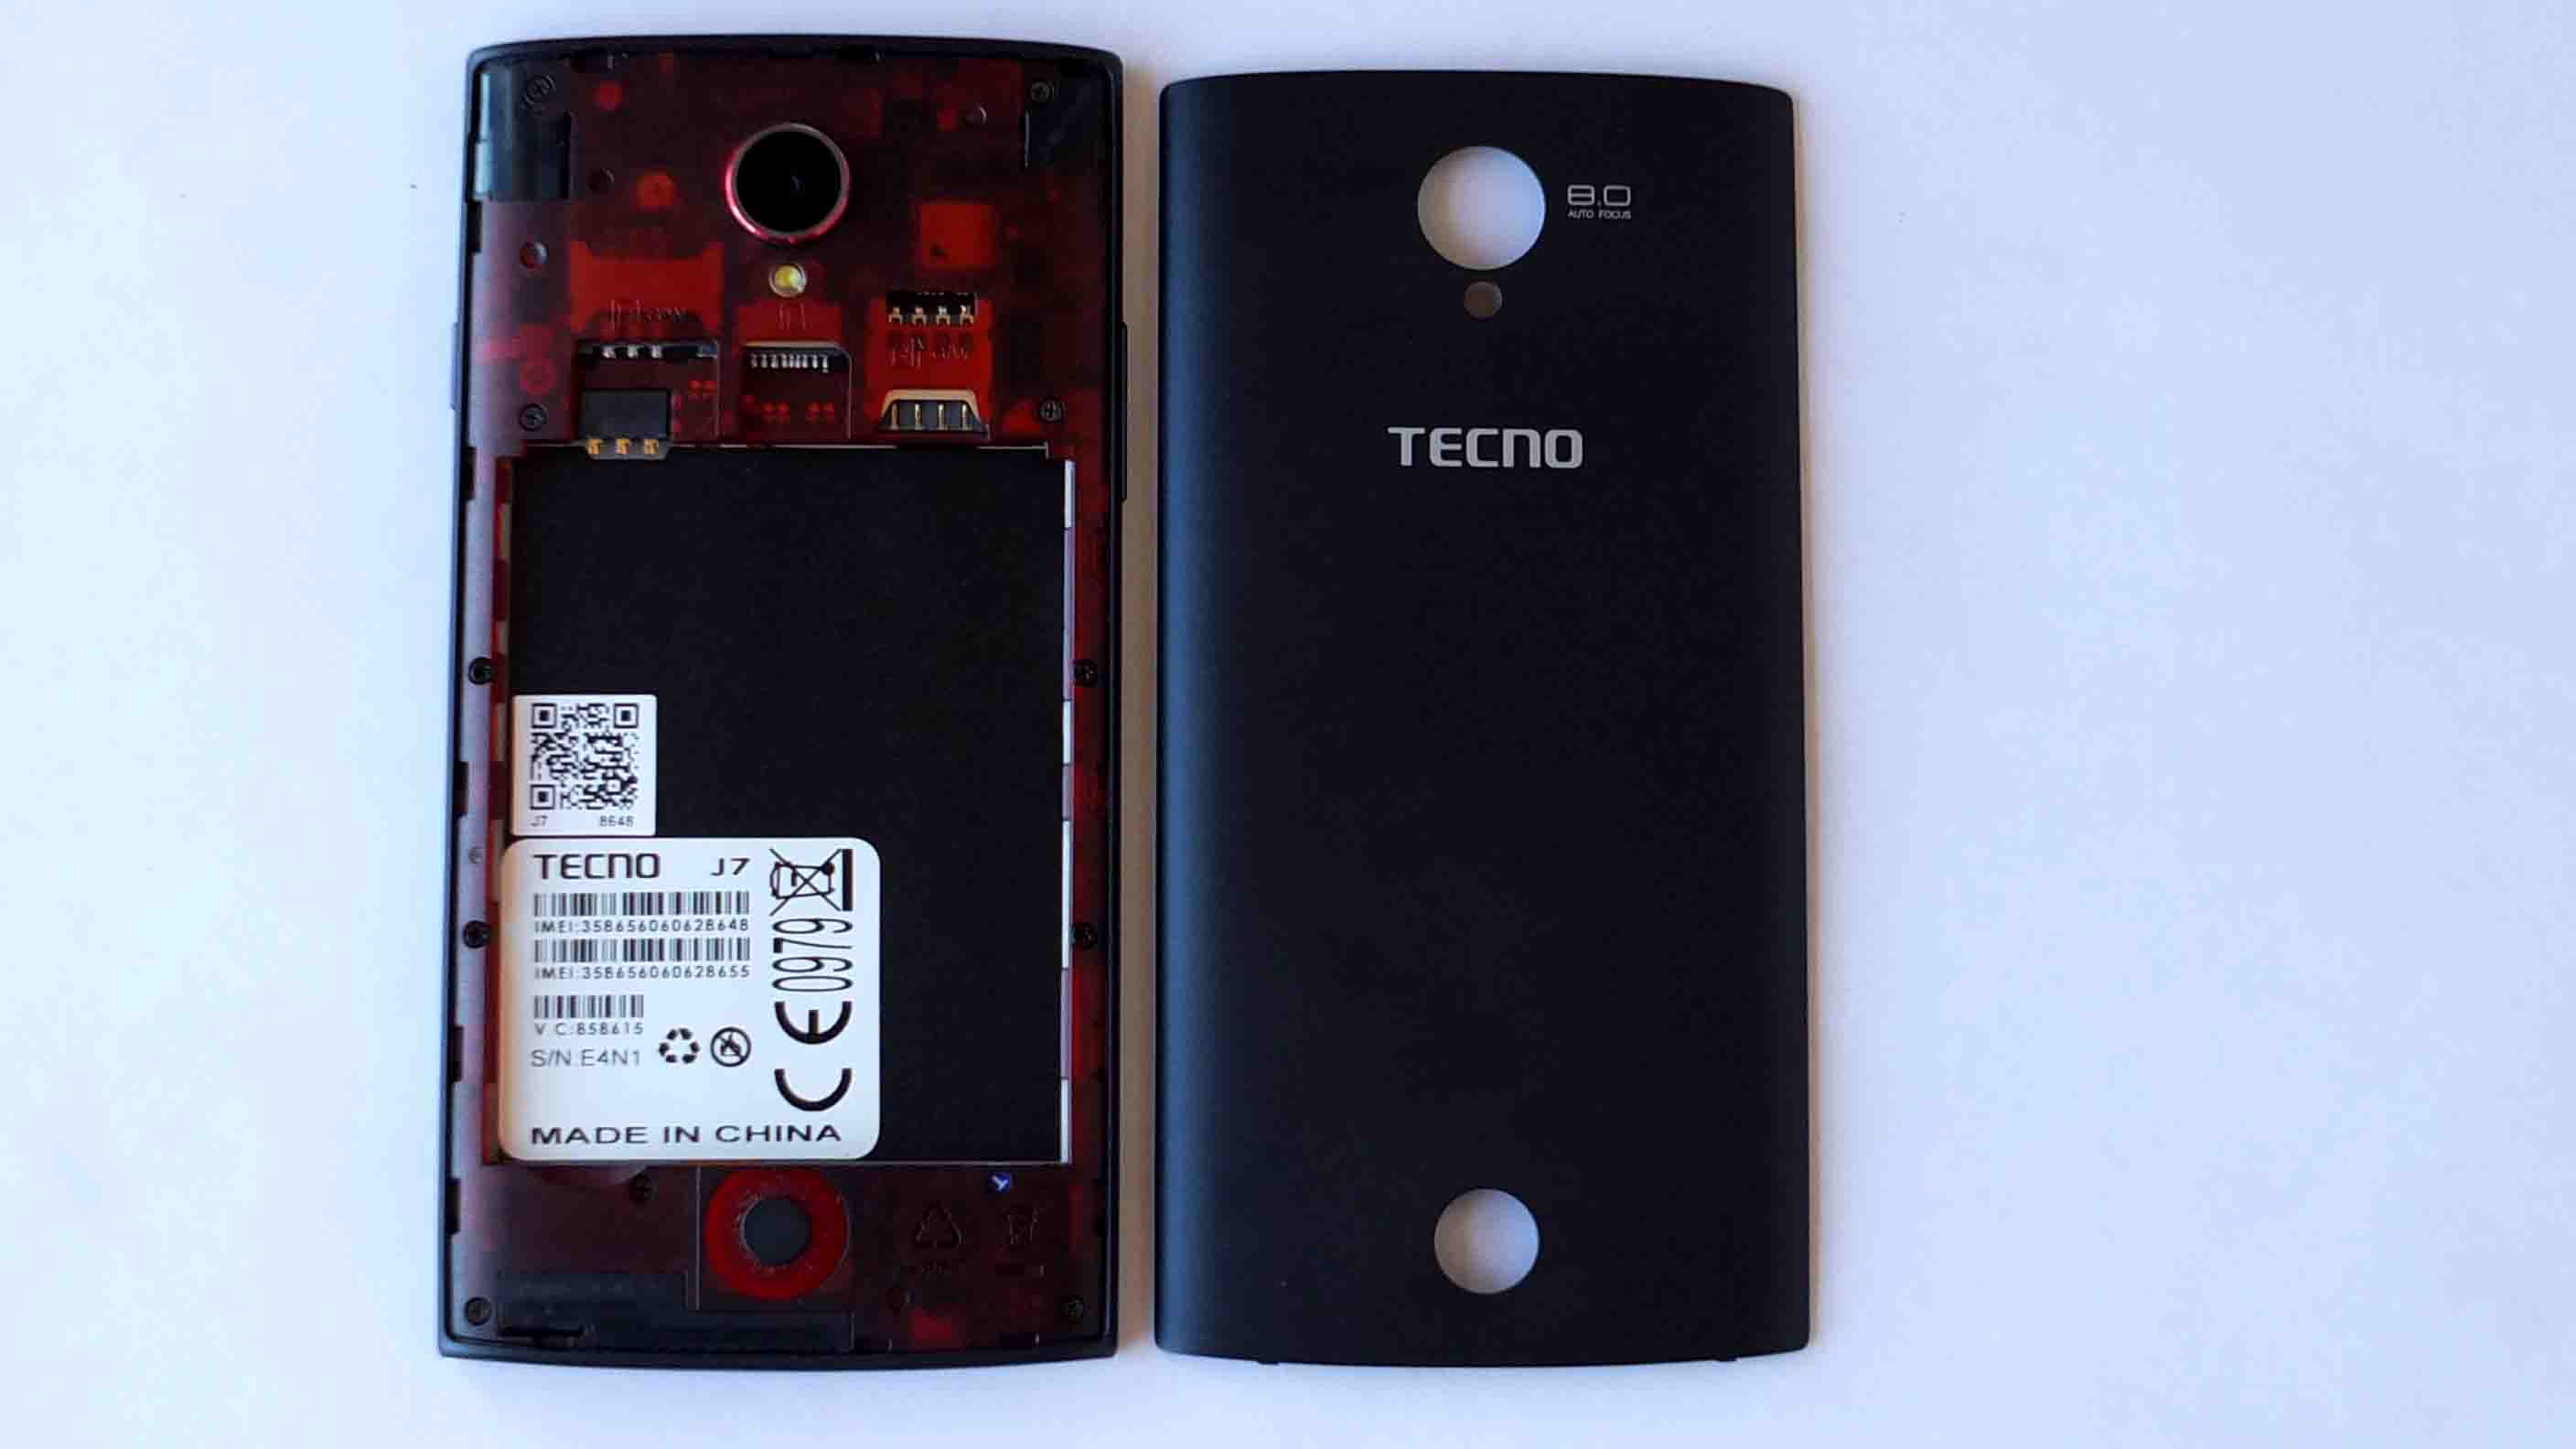 Tecno Boom J7 Review: Boom sound, great new design at an affordable